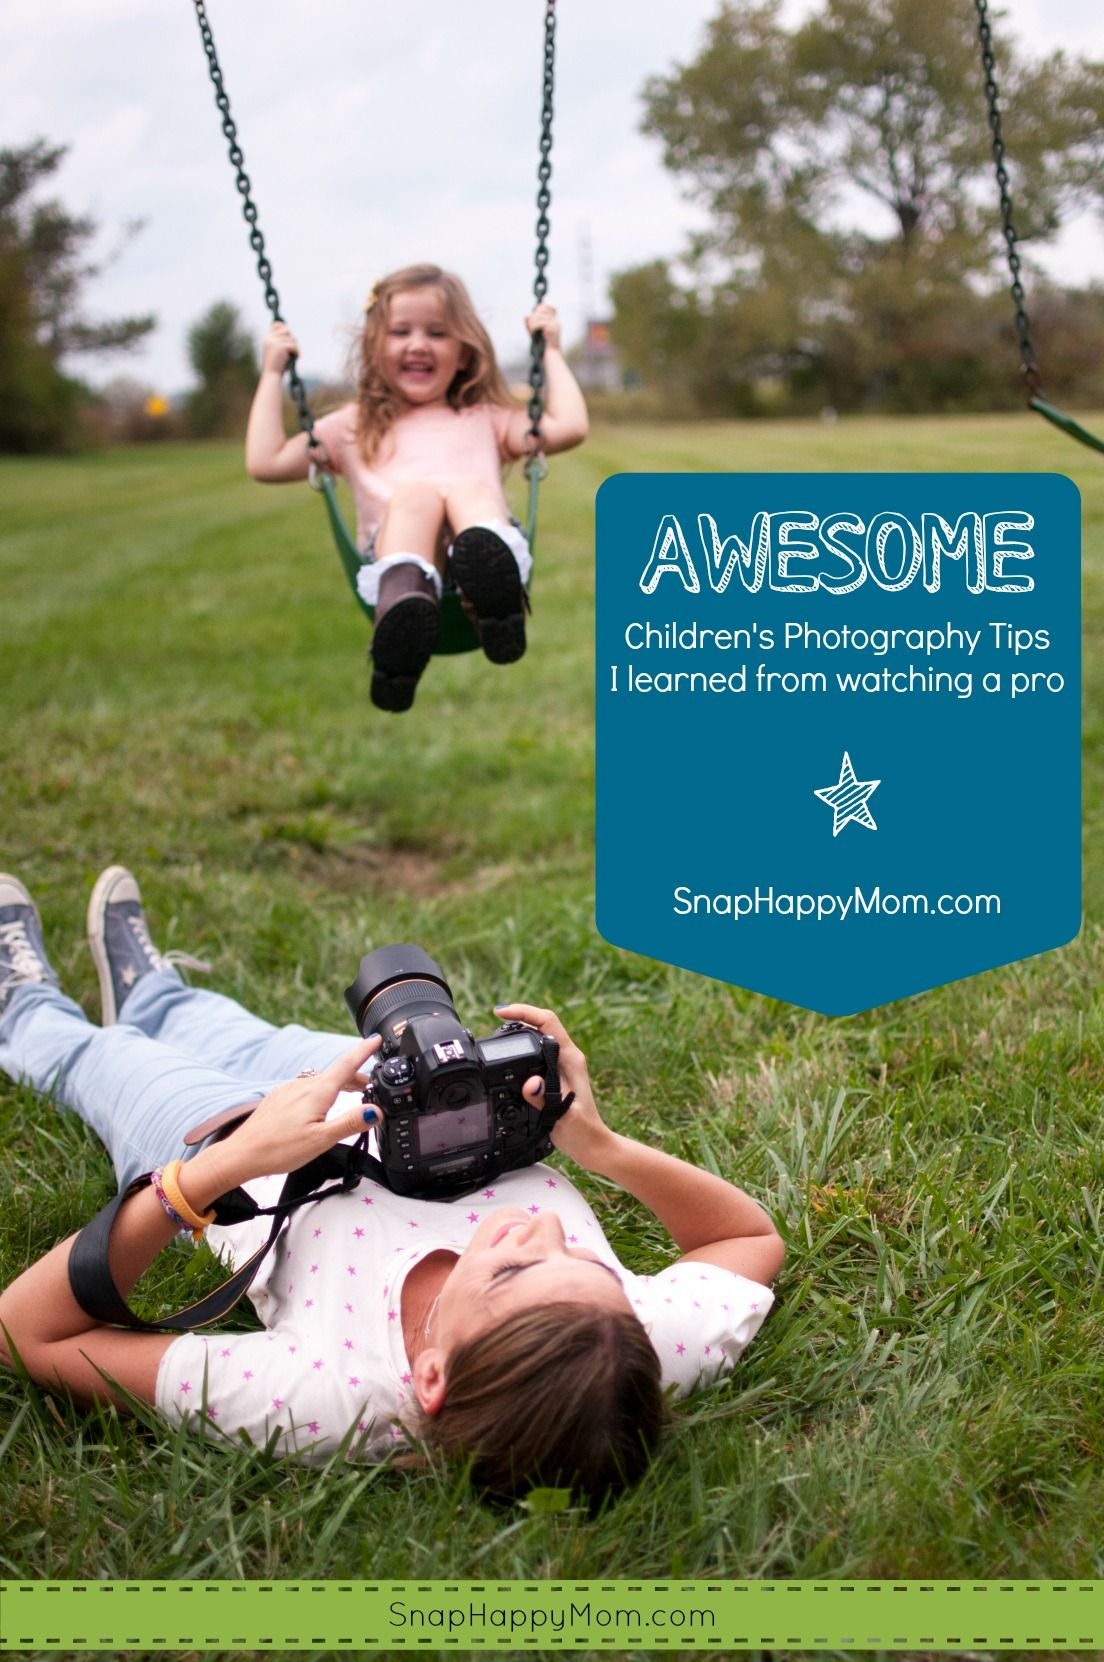 Awesome Children's Photography Tips - Snap Happy Mom